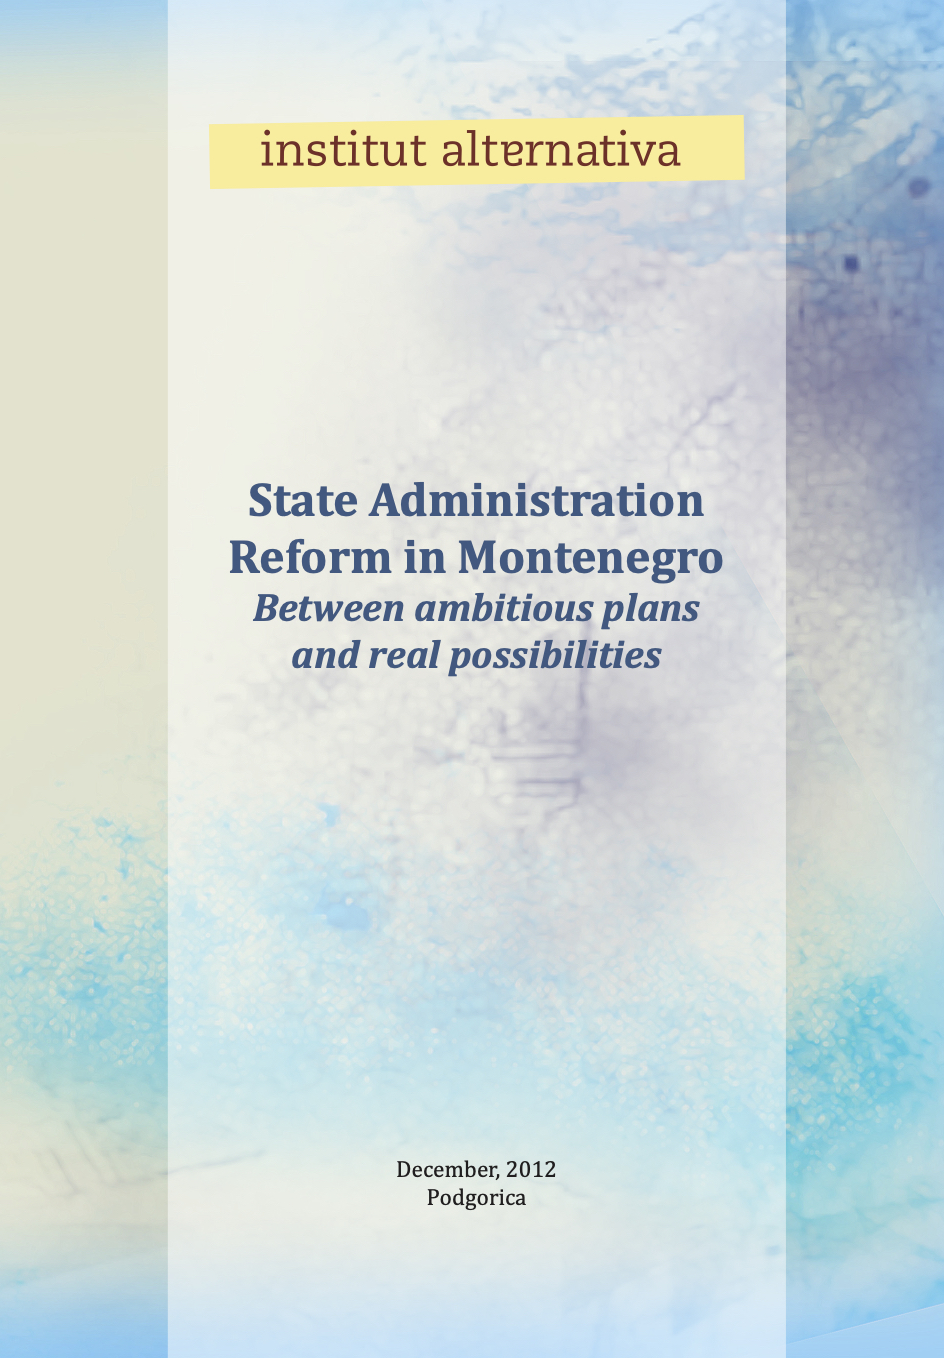 State Administration Reform in Montenegro - Between ambitious plans and real possibilities